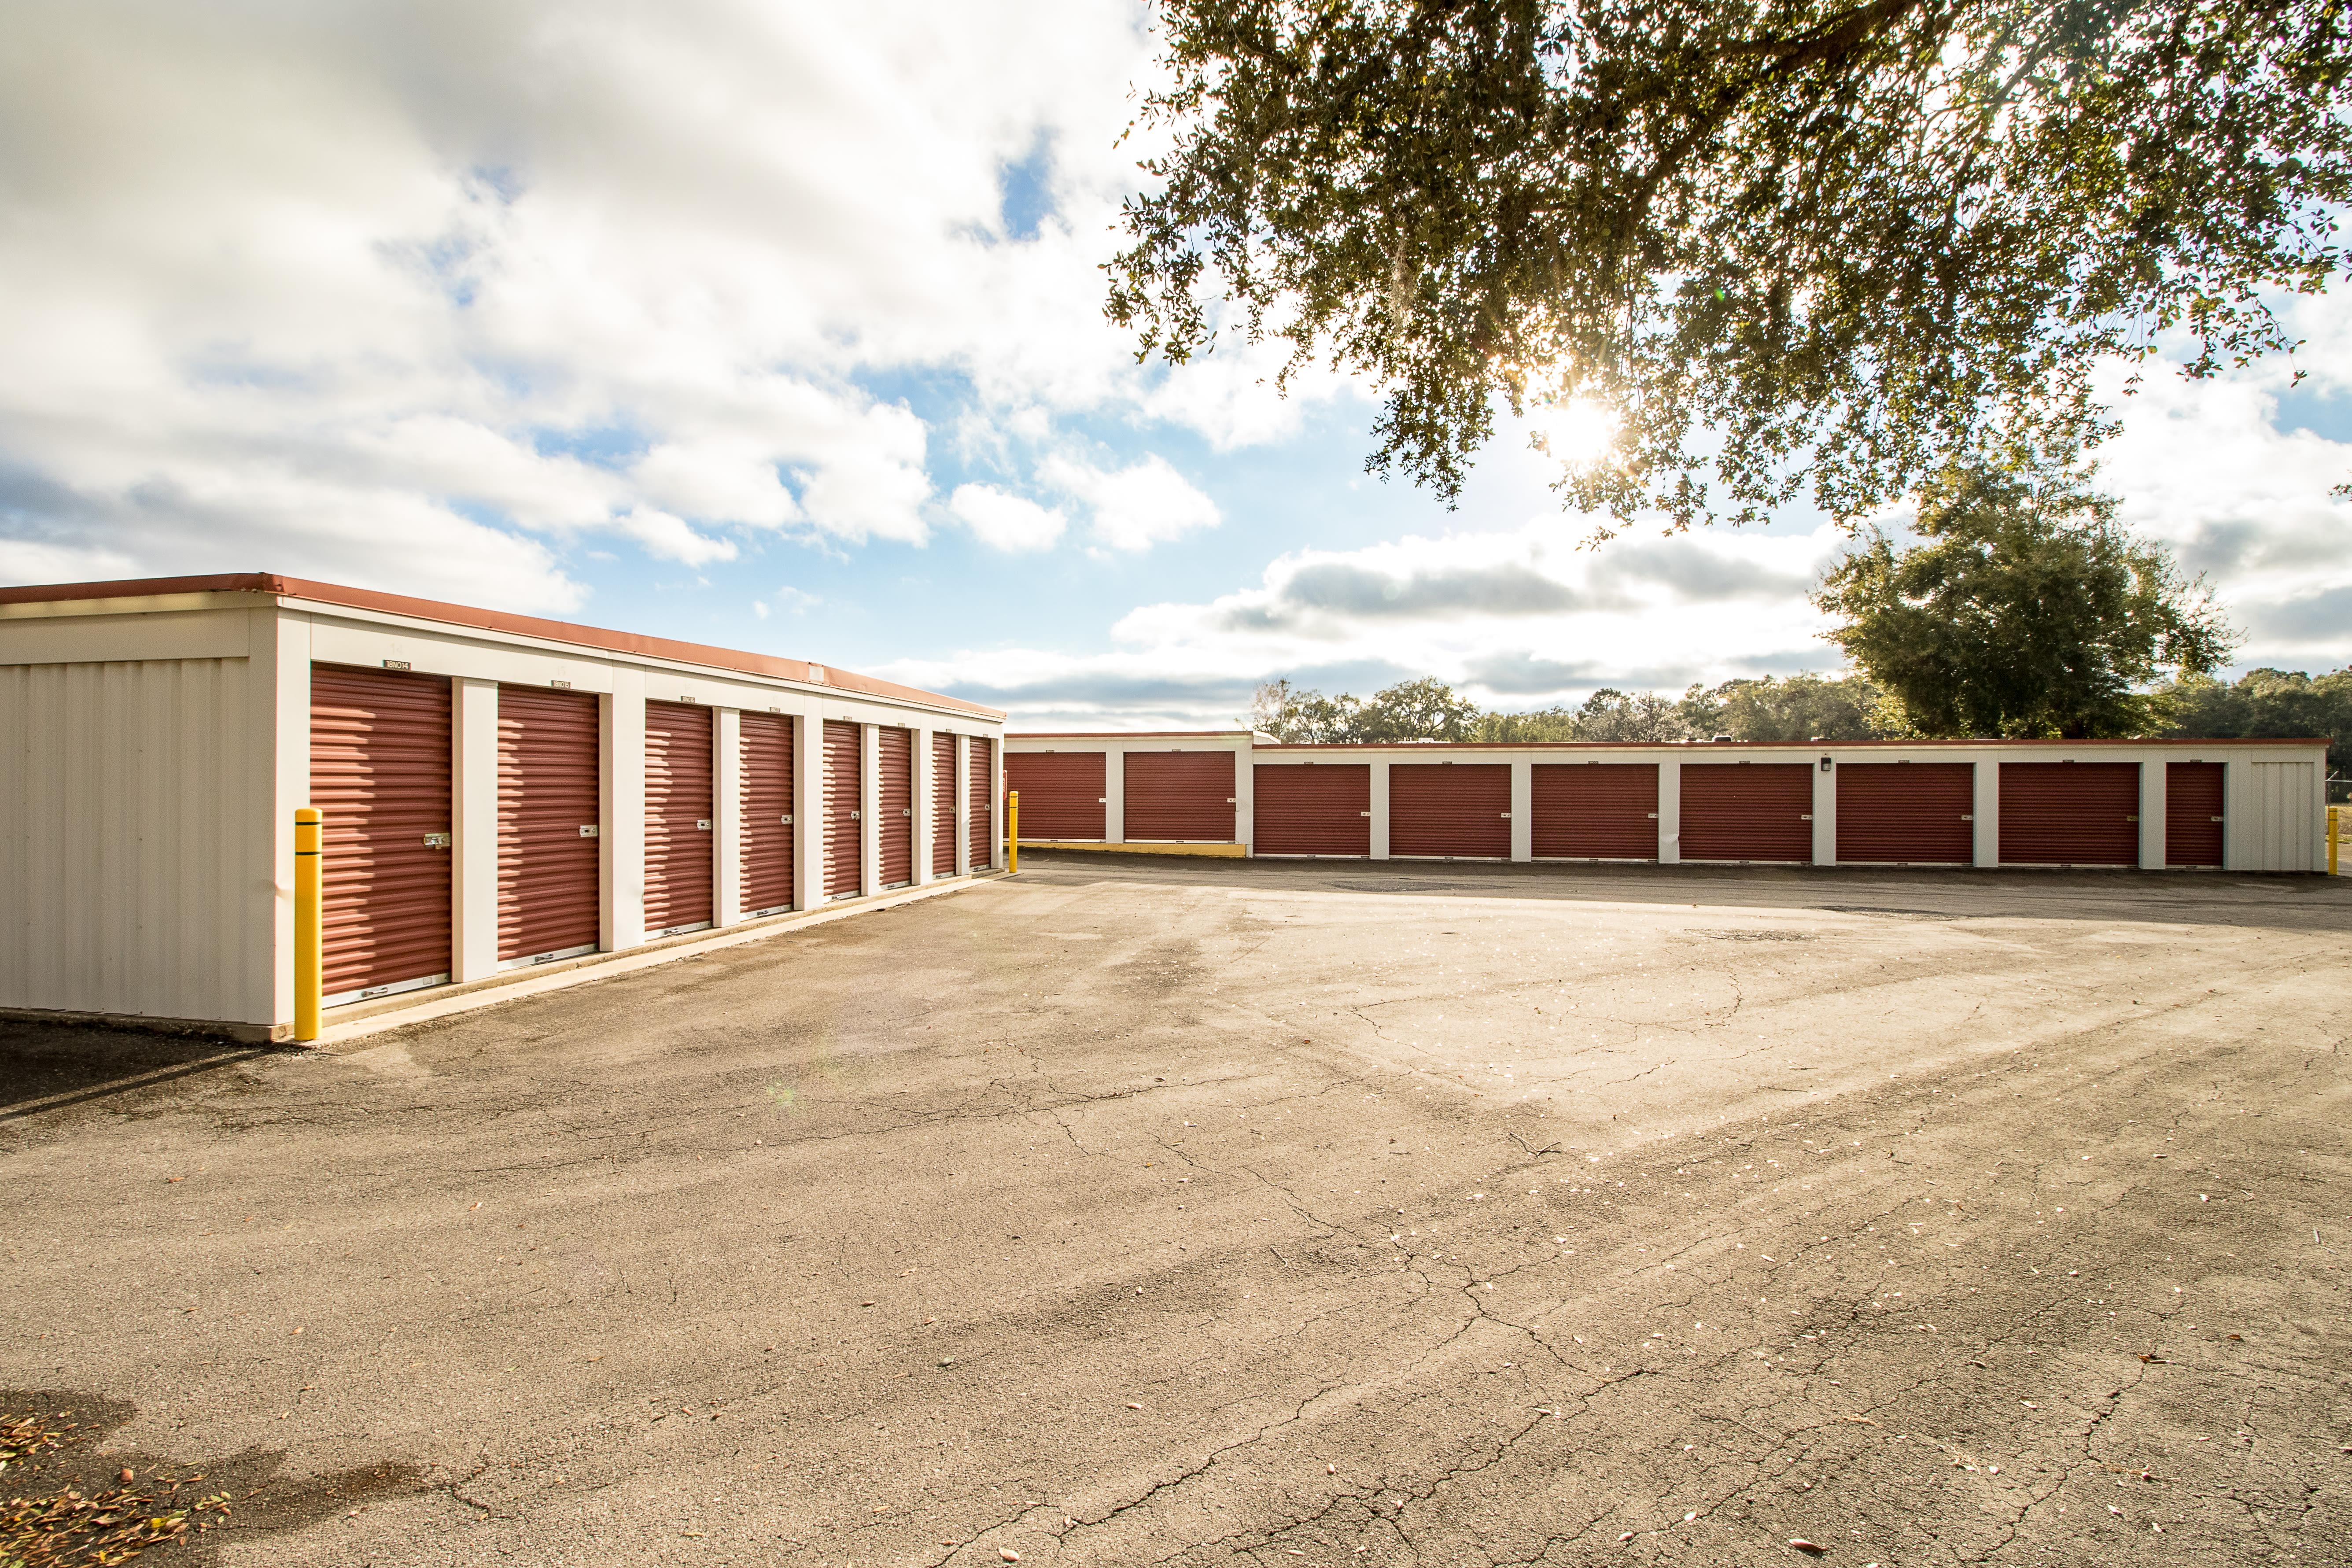 Ocala, Florida storage facility exterior storage units